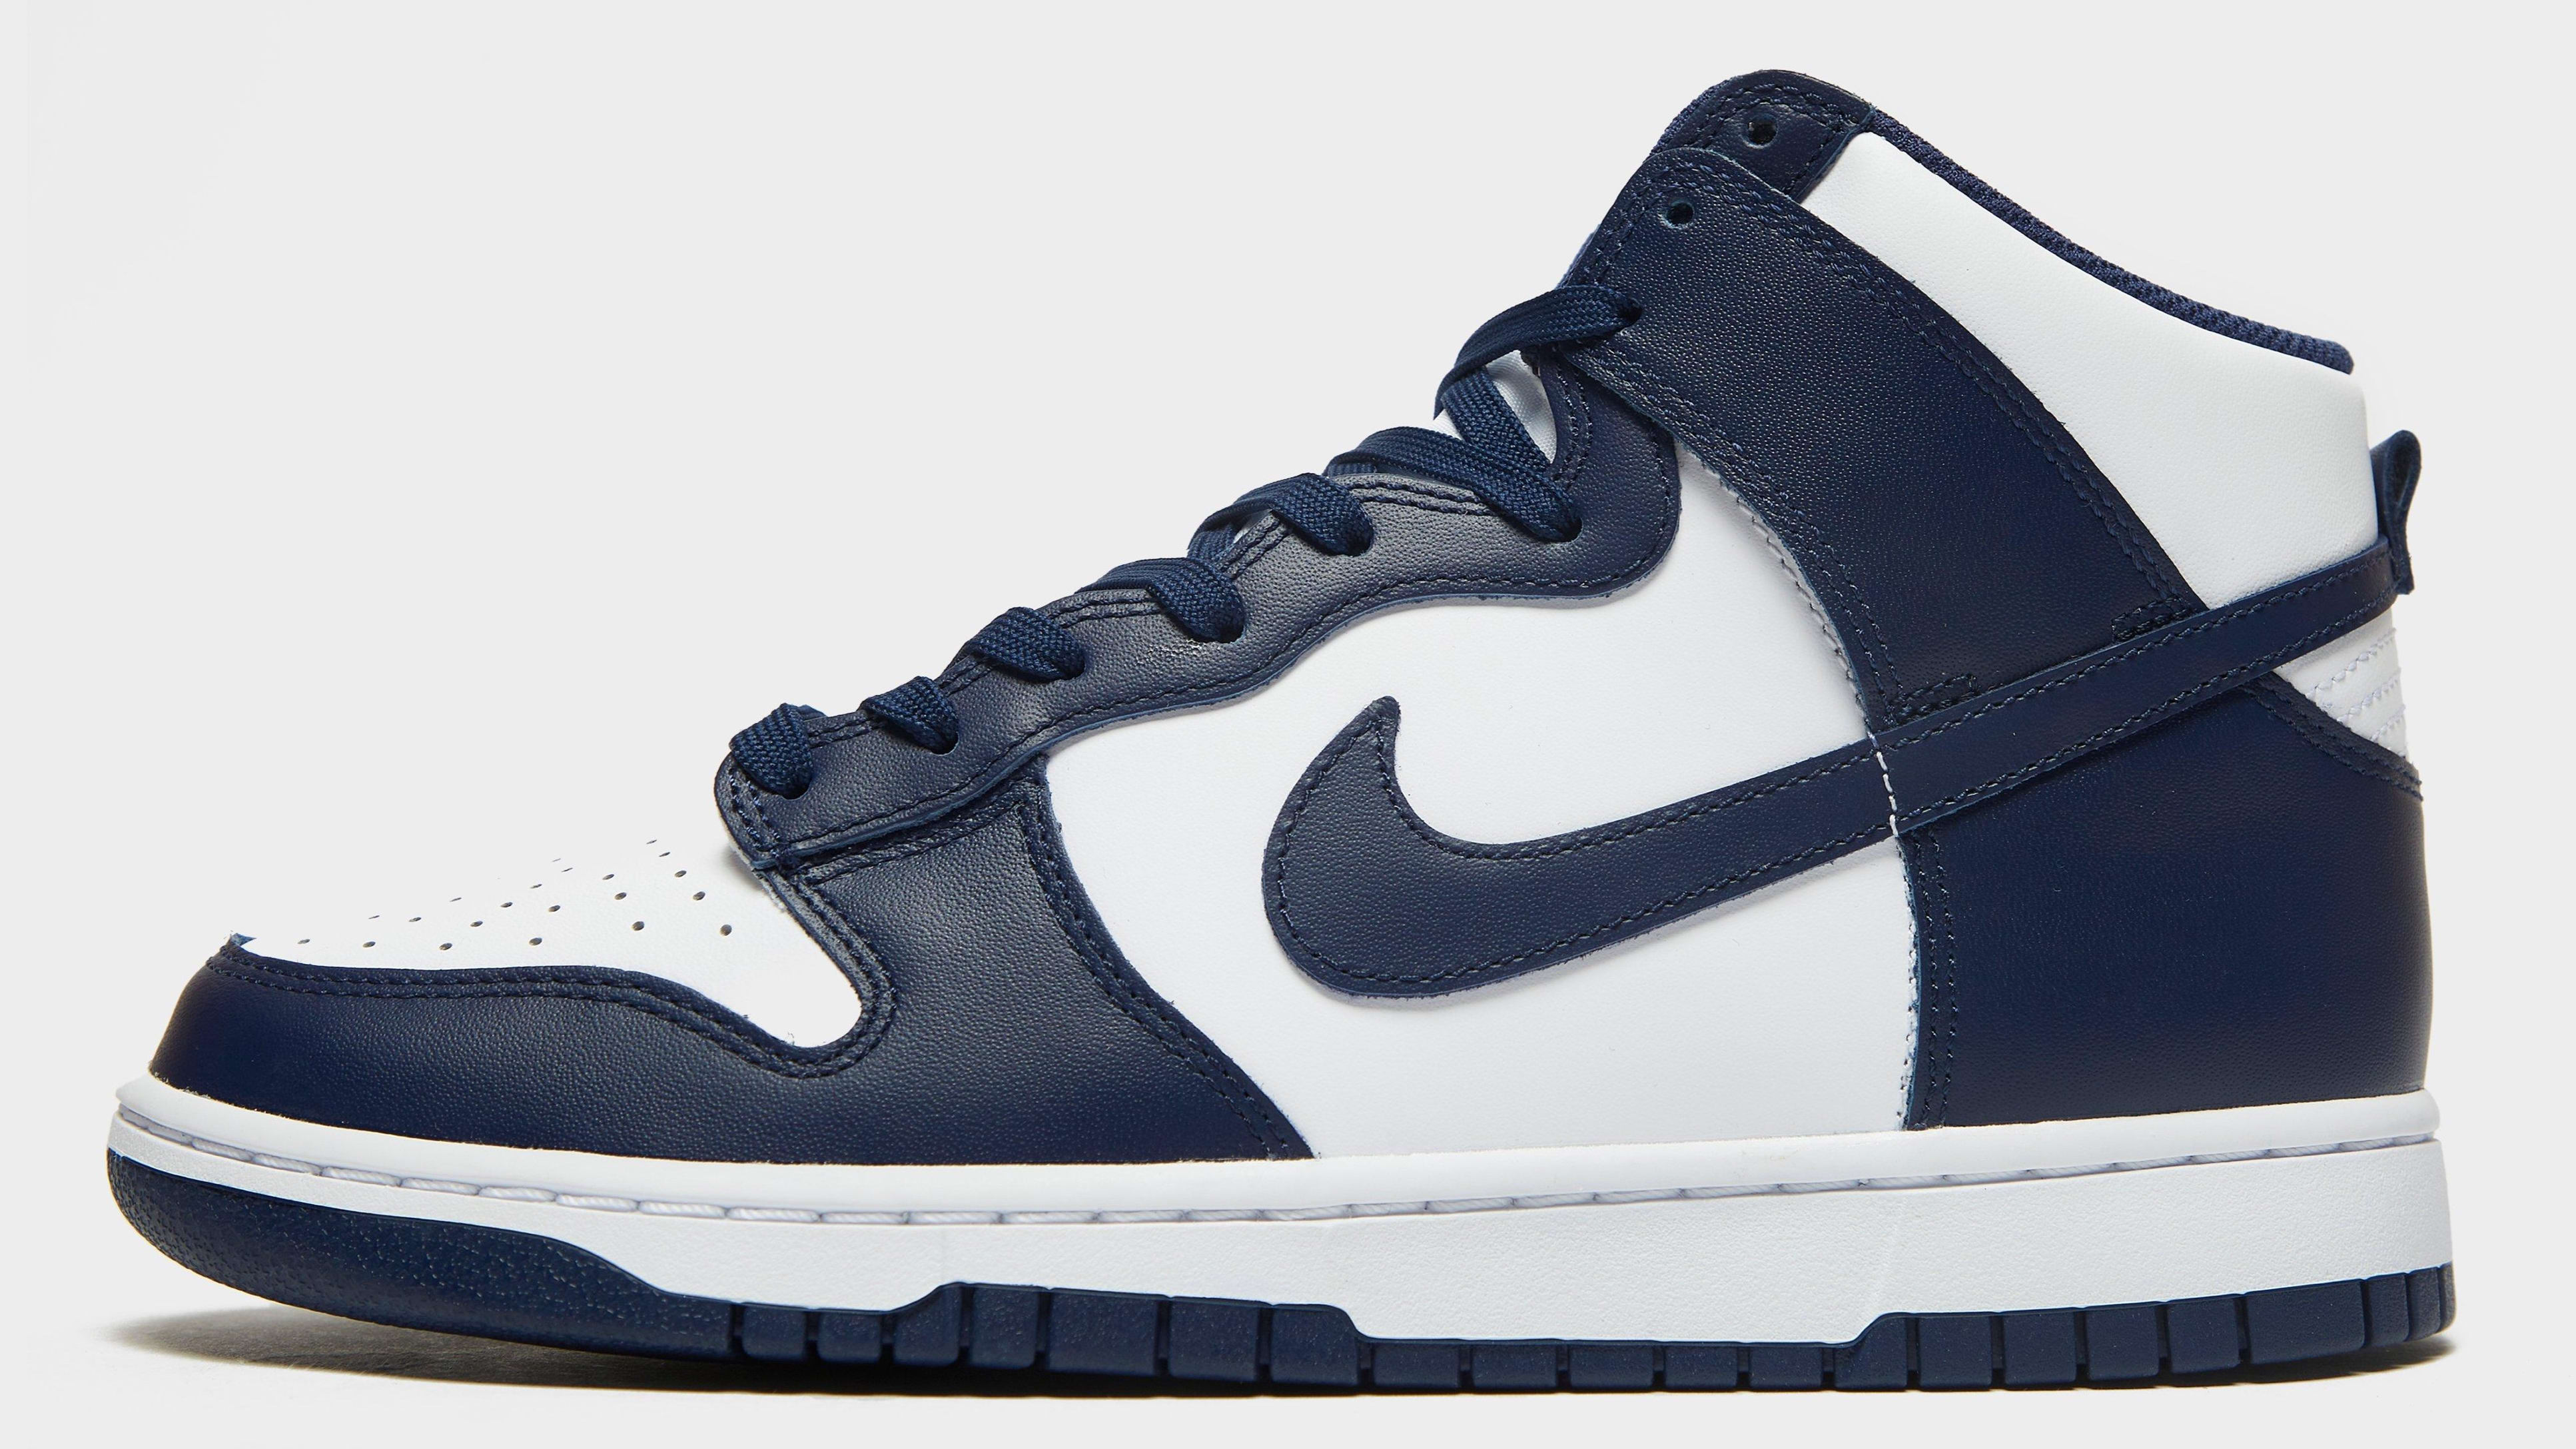 Nike Dunk High Midnight Navy 2021 Release Date Profile